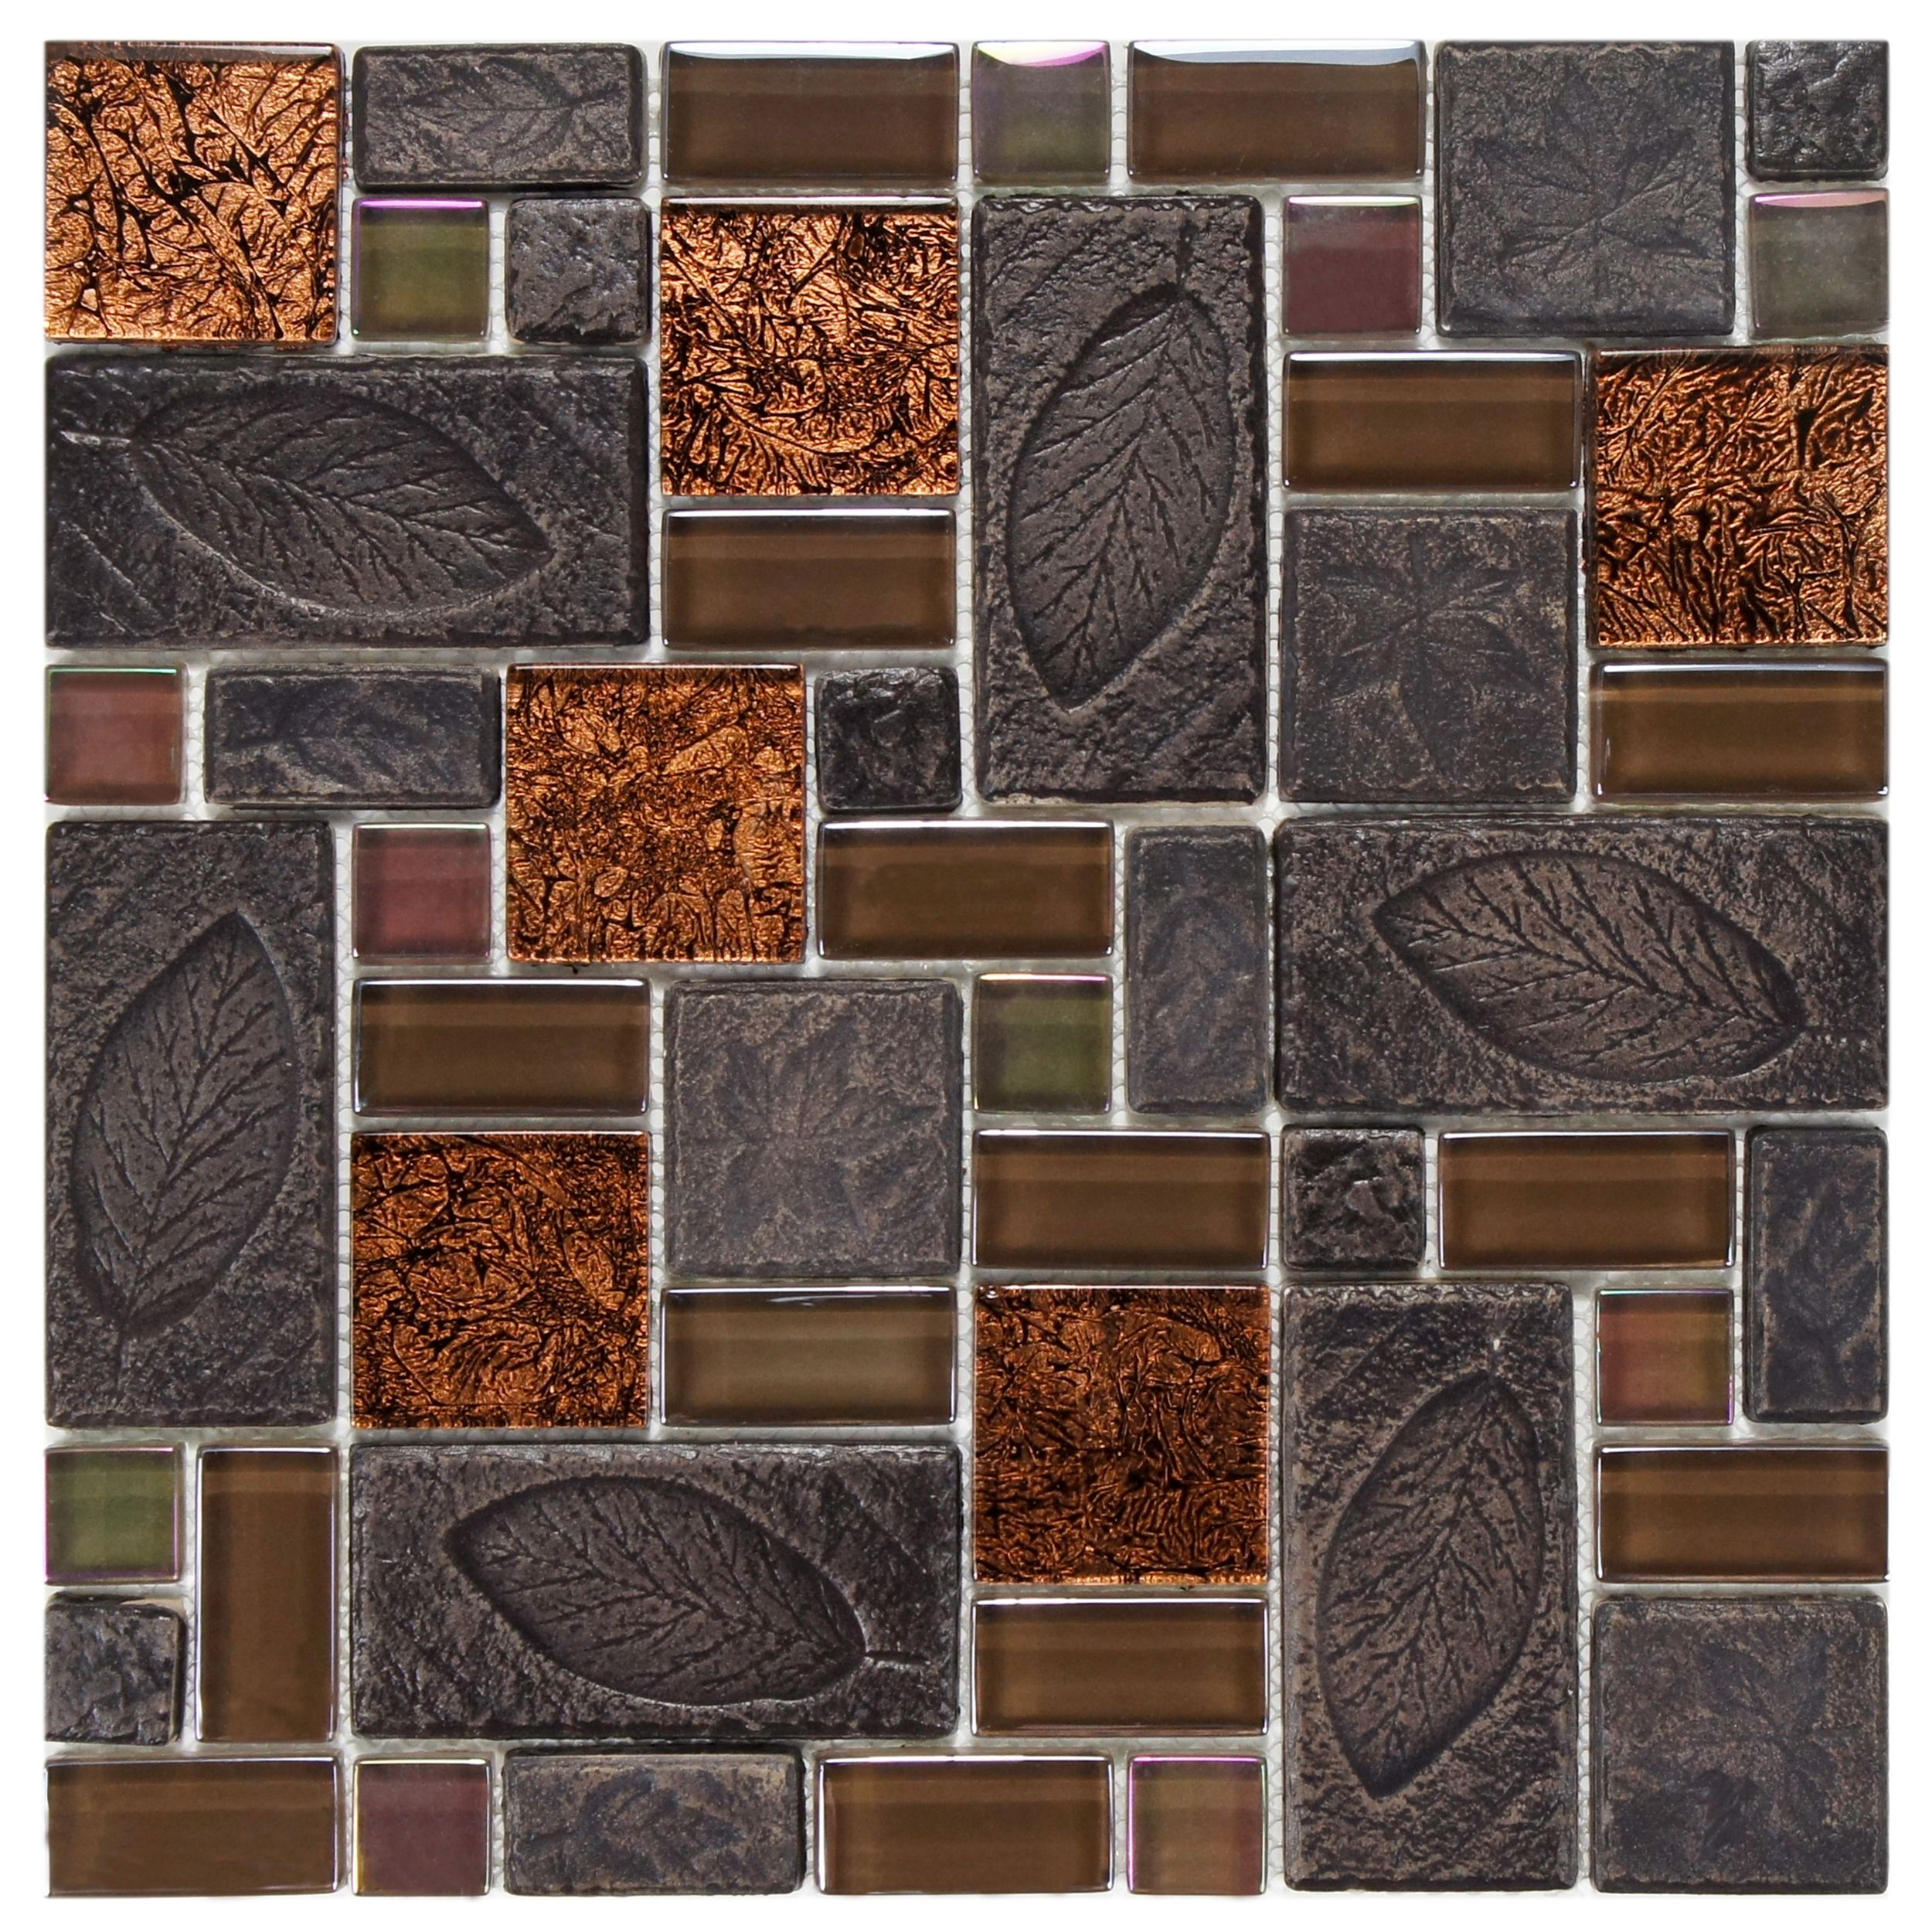 Somertile 11 75x11 75 Inch Oasis Versailles Walnut Glass And Ceramic Mosaic Wall Tile 10 Tiles 9 79 Sqft Case Oasis Versailles Glass Mosaic Tiles Ceramic Mosaic Tile Mosaic Glass